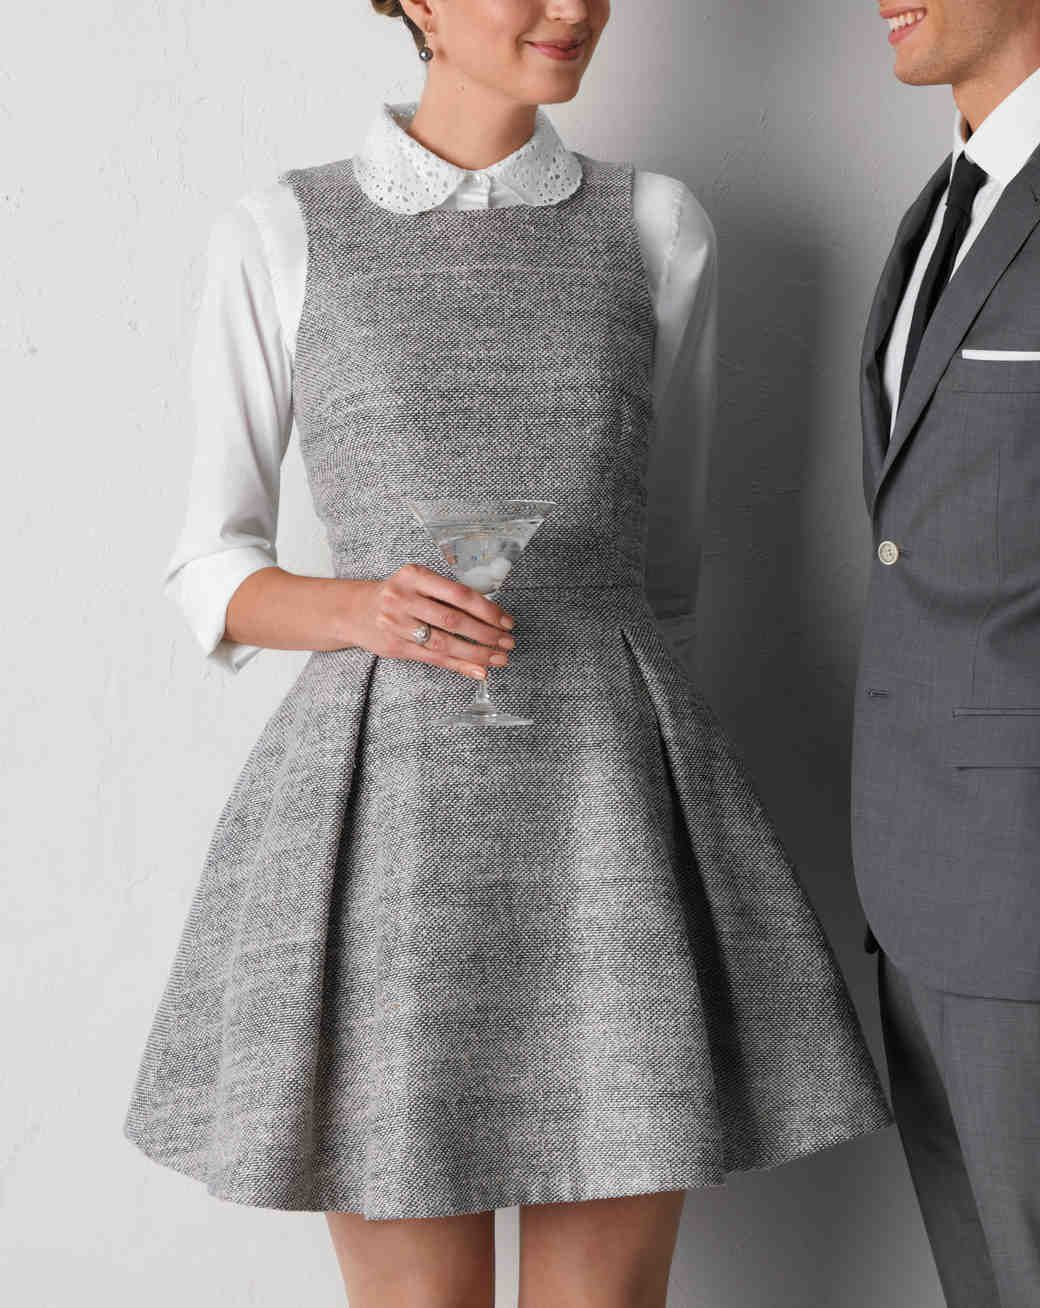 2b8612b0f8 Powder White and Shades of Gray Are an Elegant Pairing for Your ...